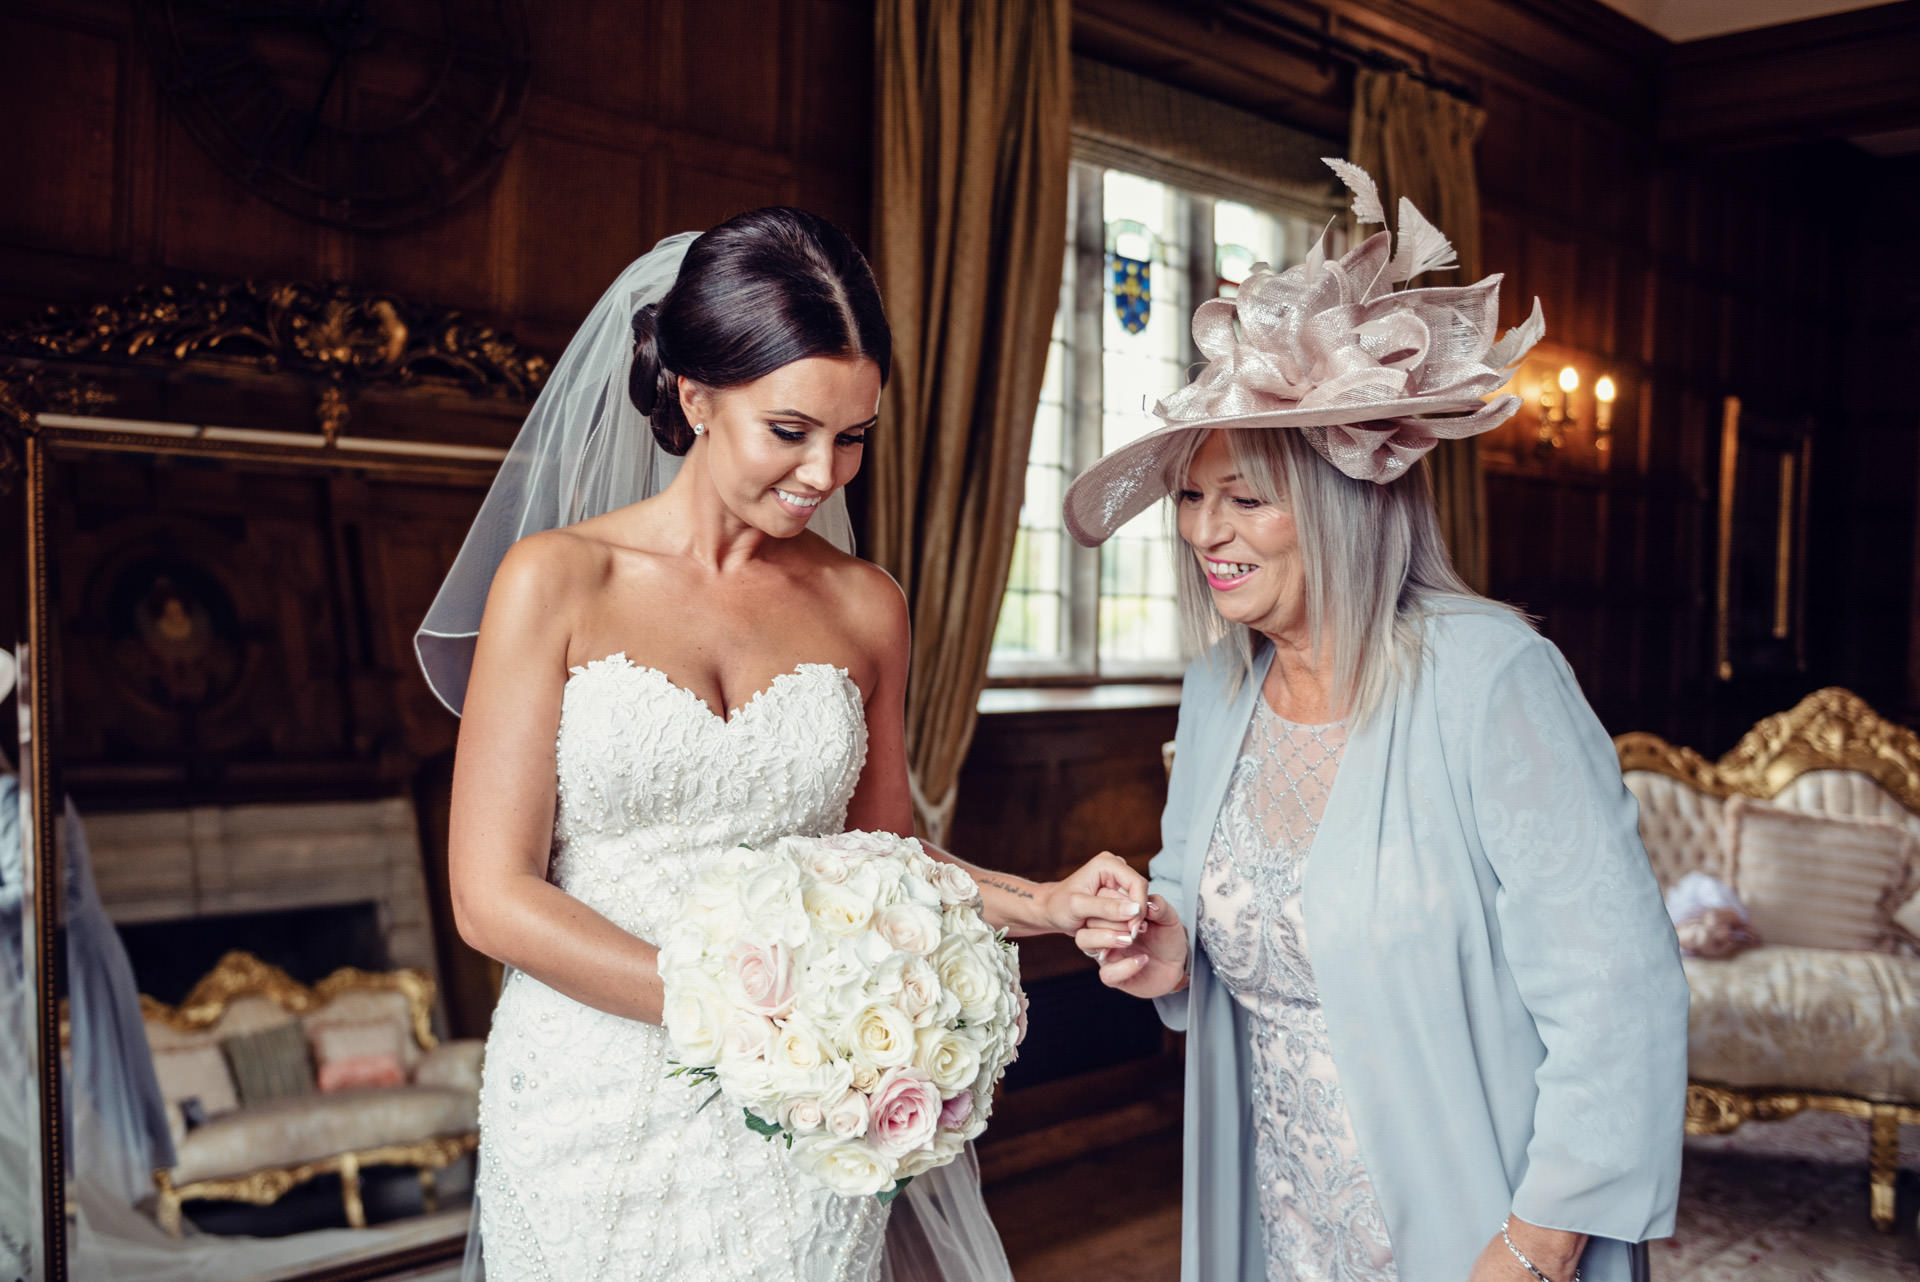 The Mother of the Bride marvels at Jayde's sensational bouquet.